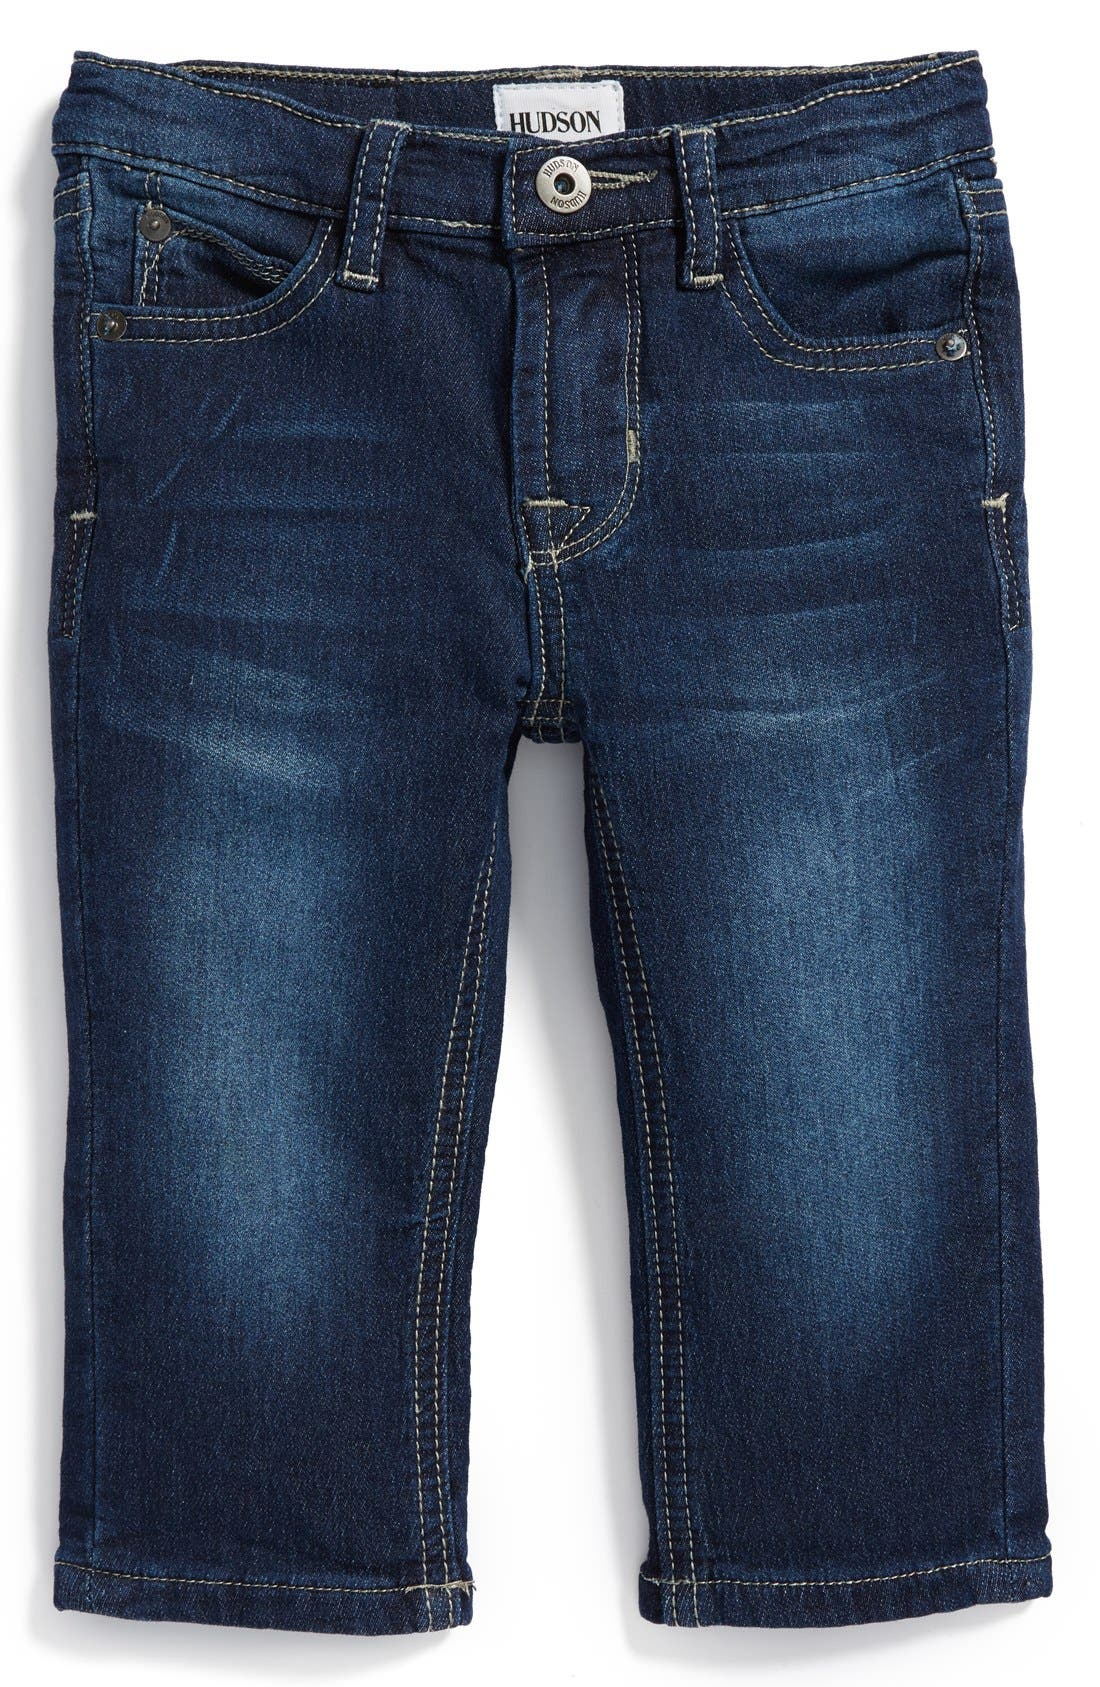 Alternate Image 1 Selected - Hudson Kids 'Parker' French Terry Skinny Jeans (Baby Boys) (Online Only)